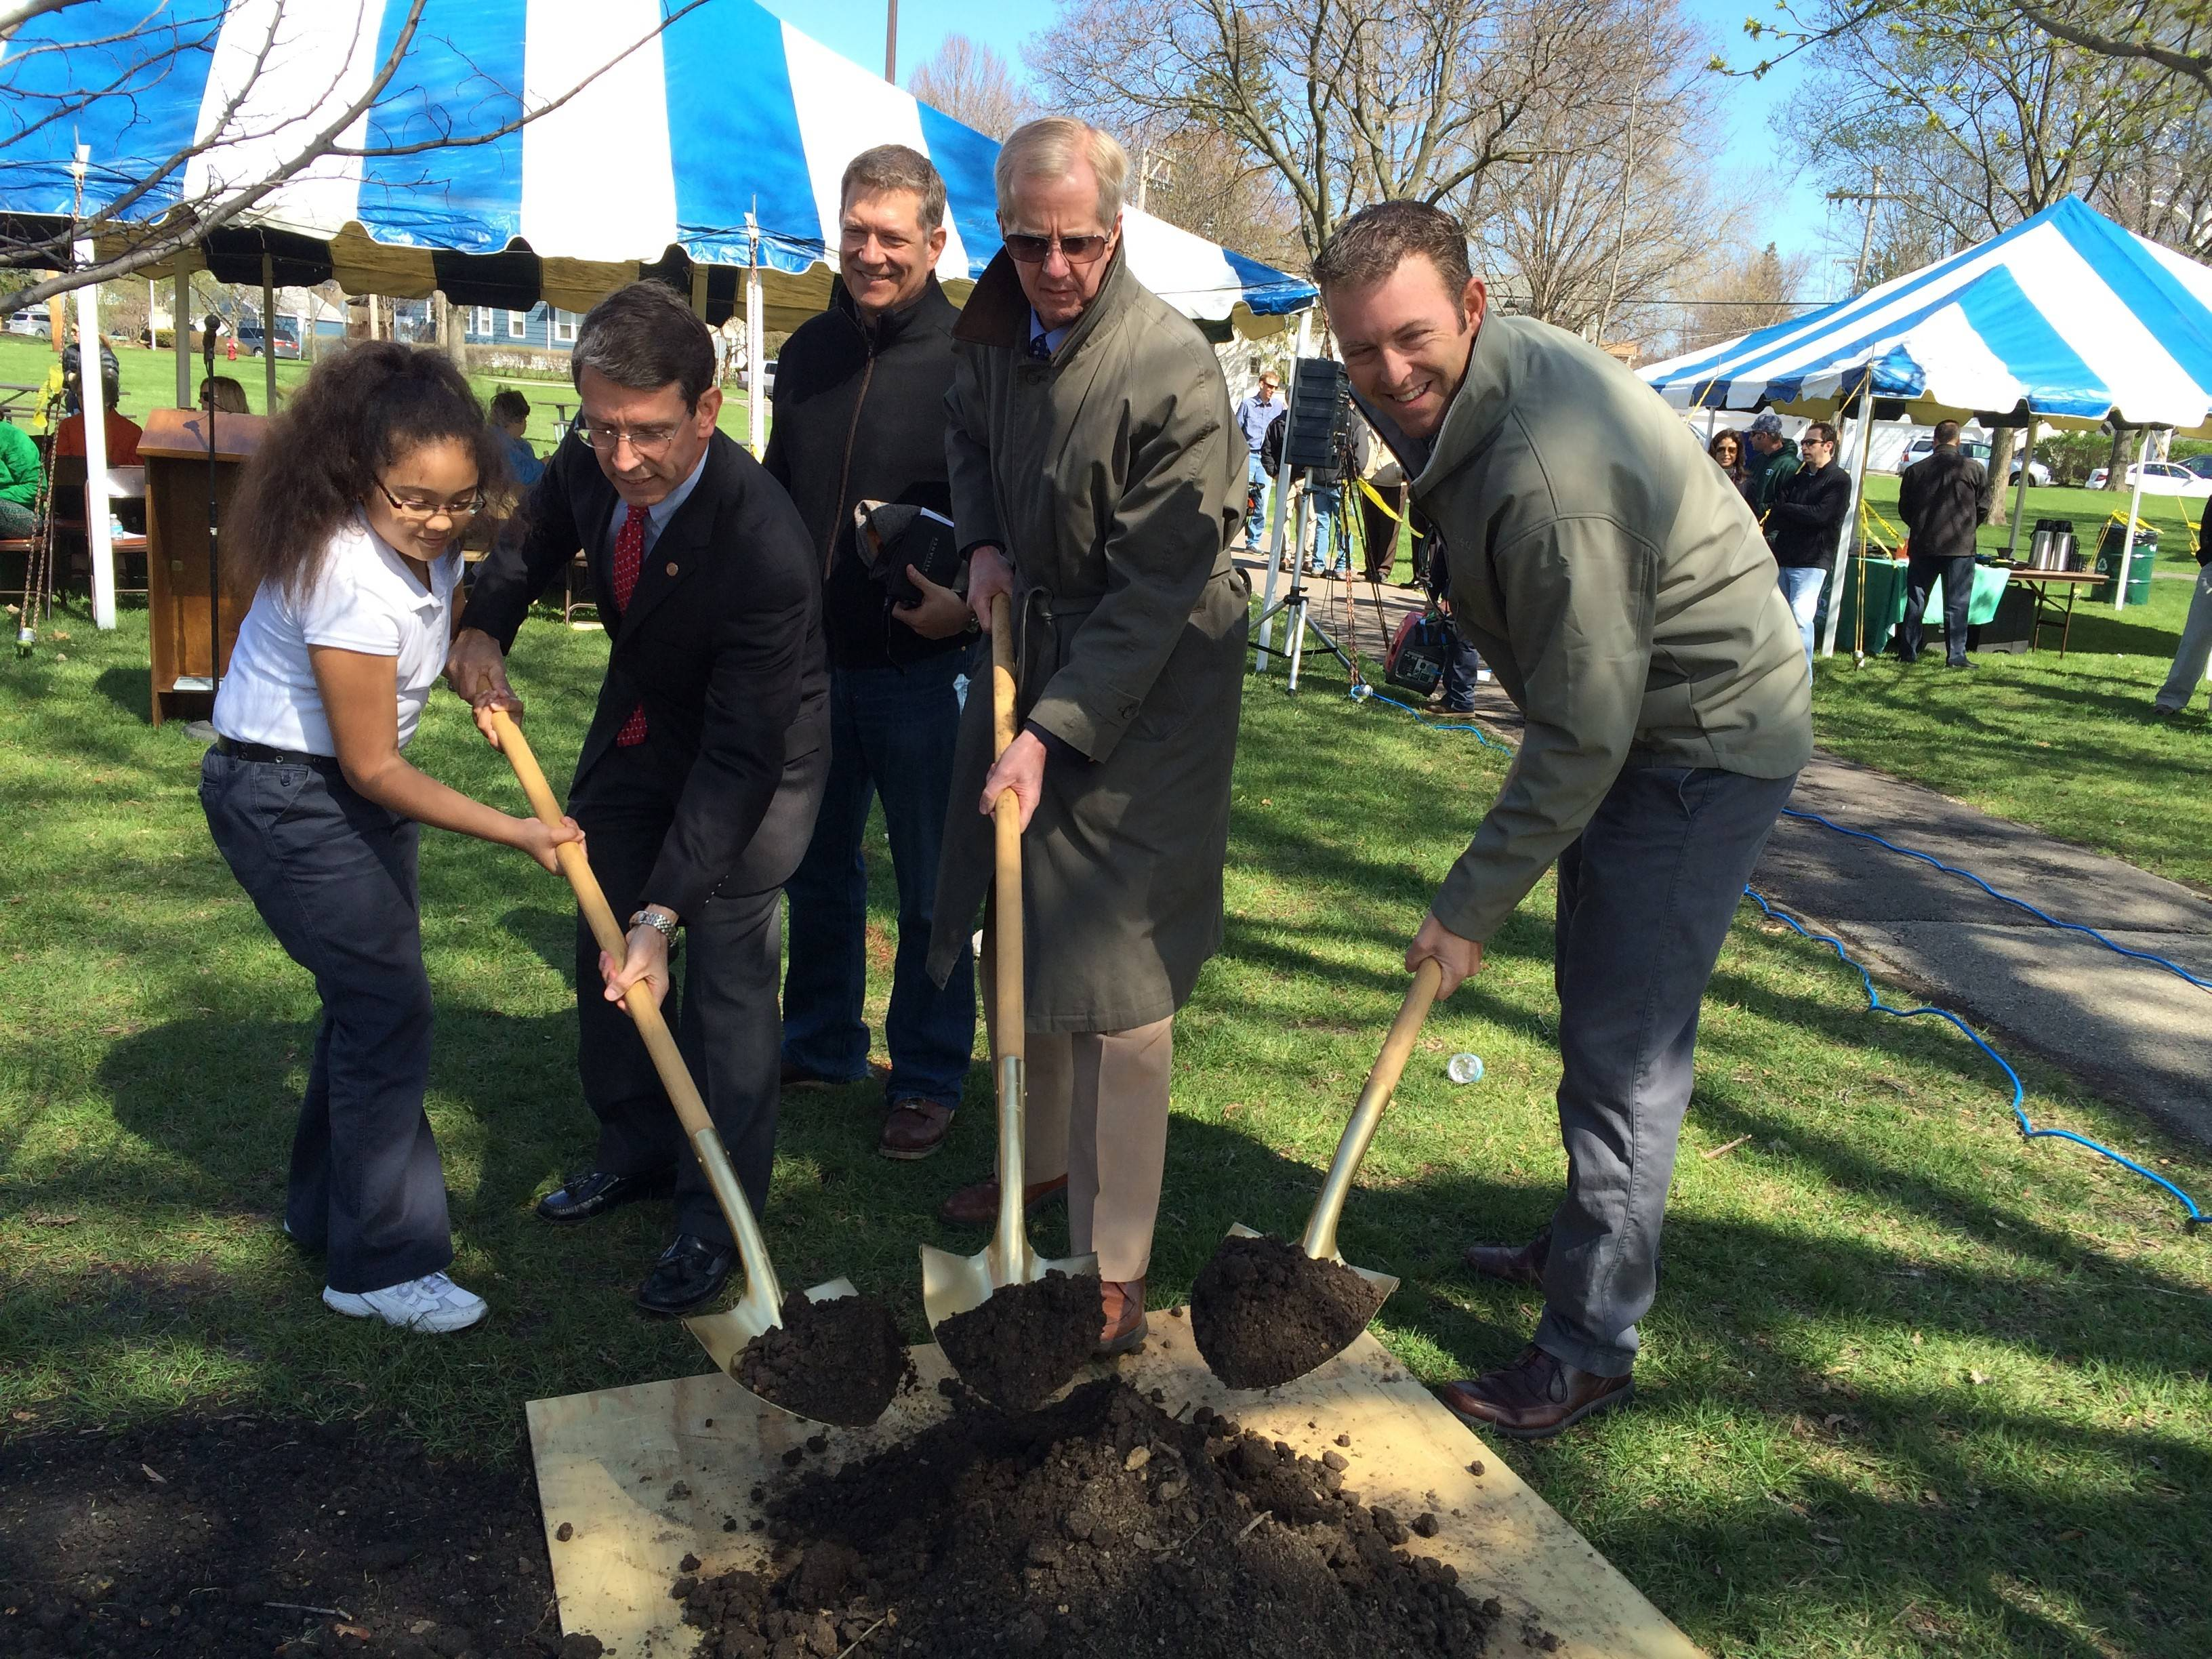 St. James Elementary student Clarise Chambers helps Mayor Tom Hayes, Trustee Mike Sidor, Village Manager Bill Dixon and park district Commissioner Tim Gelinas plant a new tree in Recreation Park for Arbor Day.